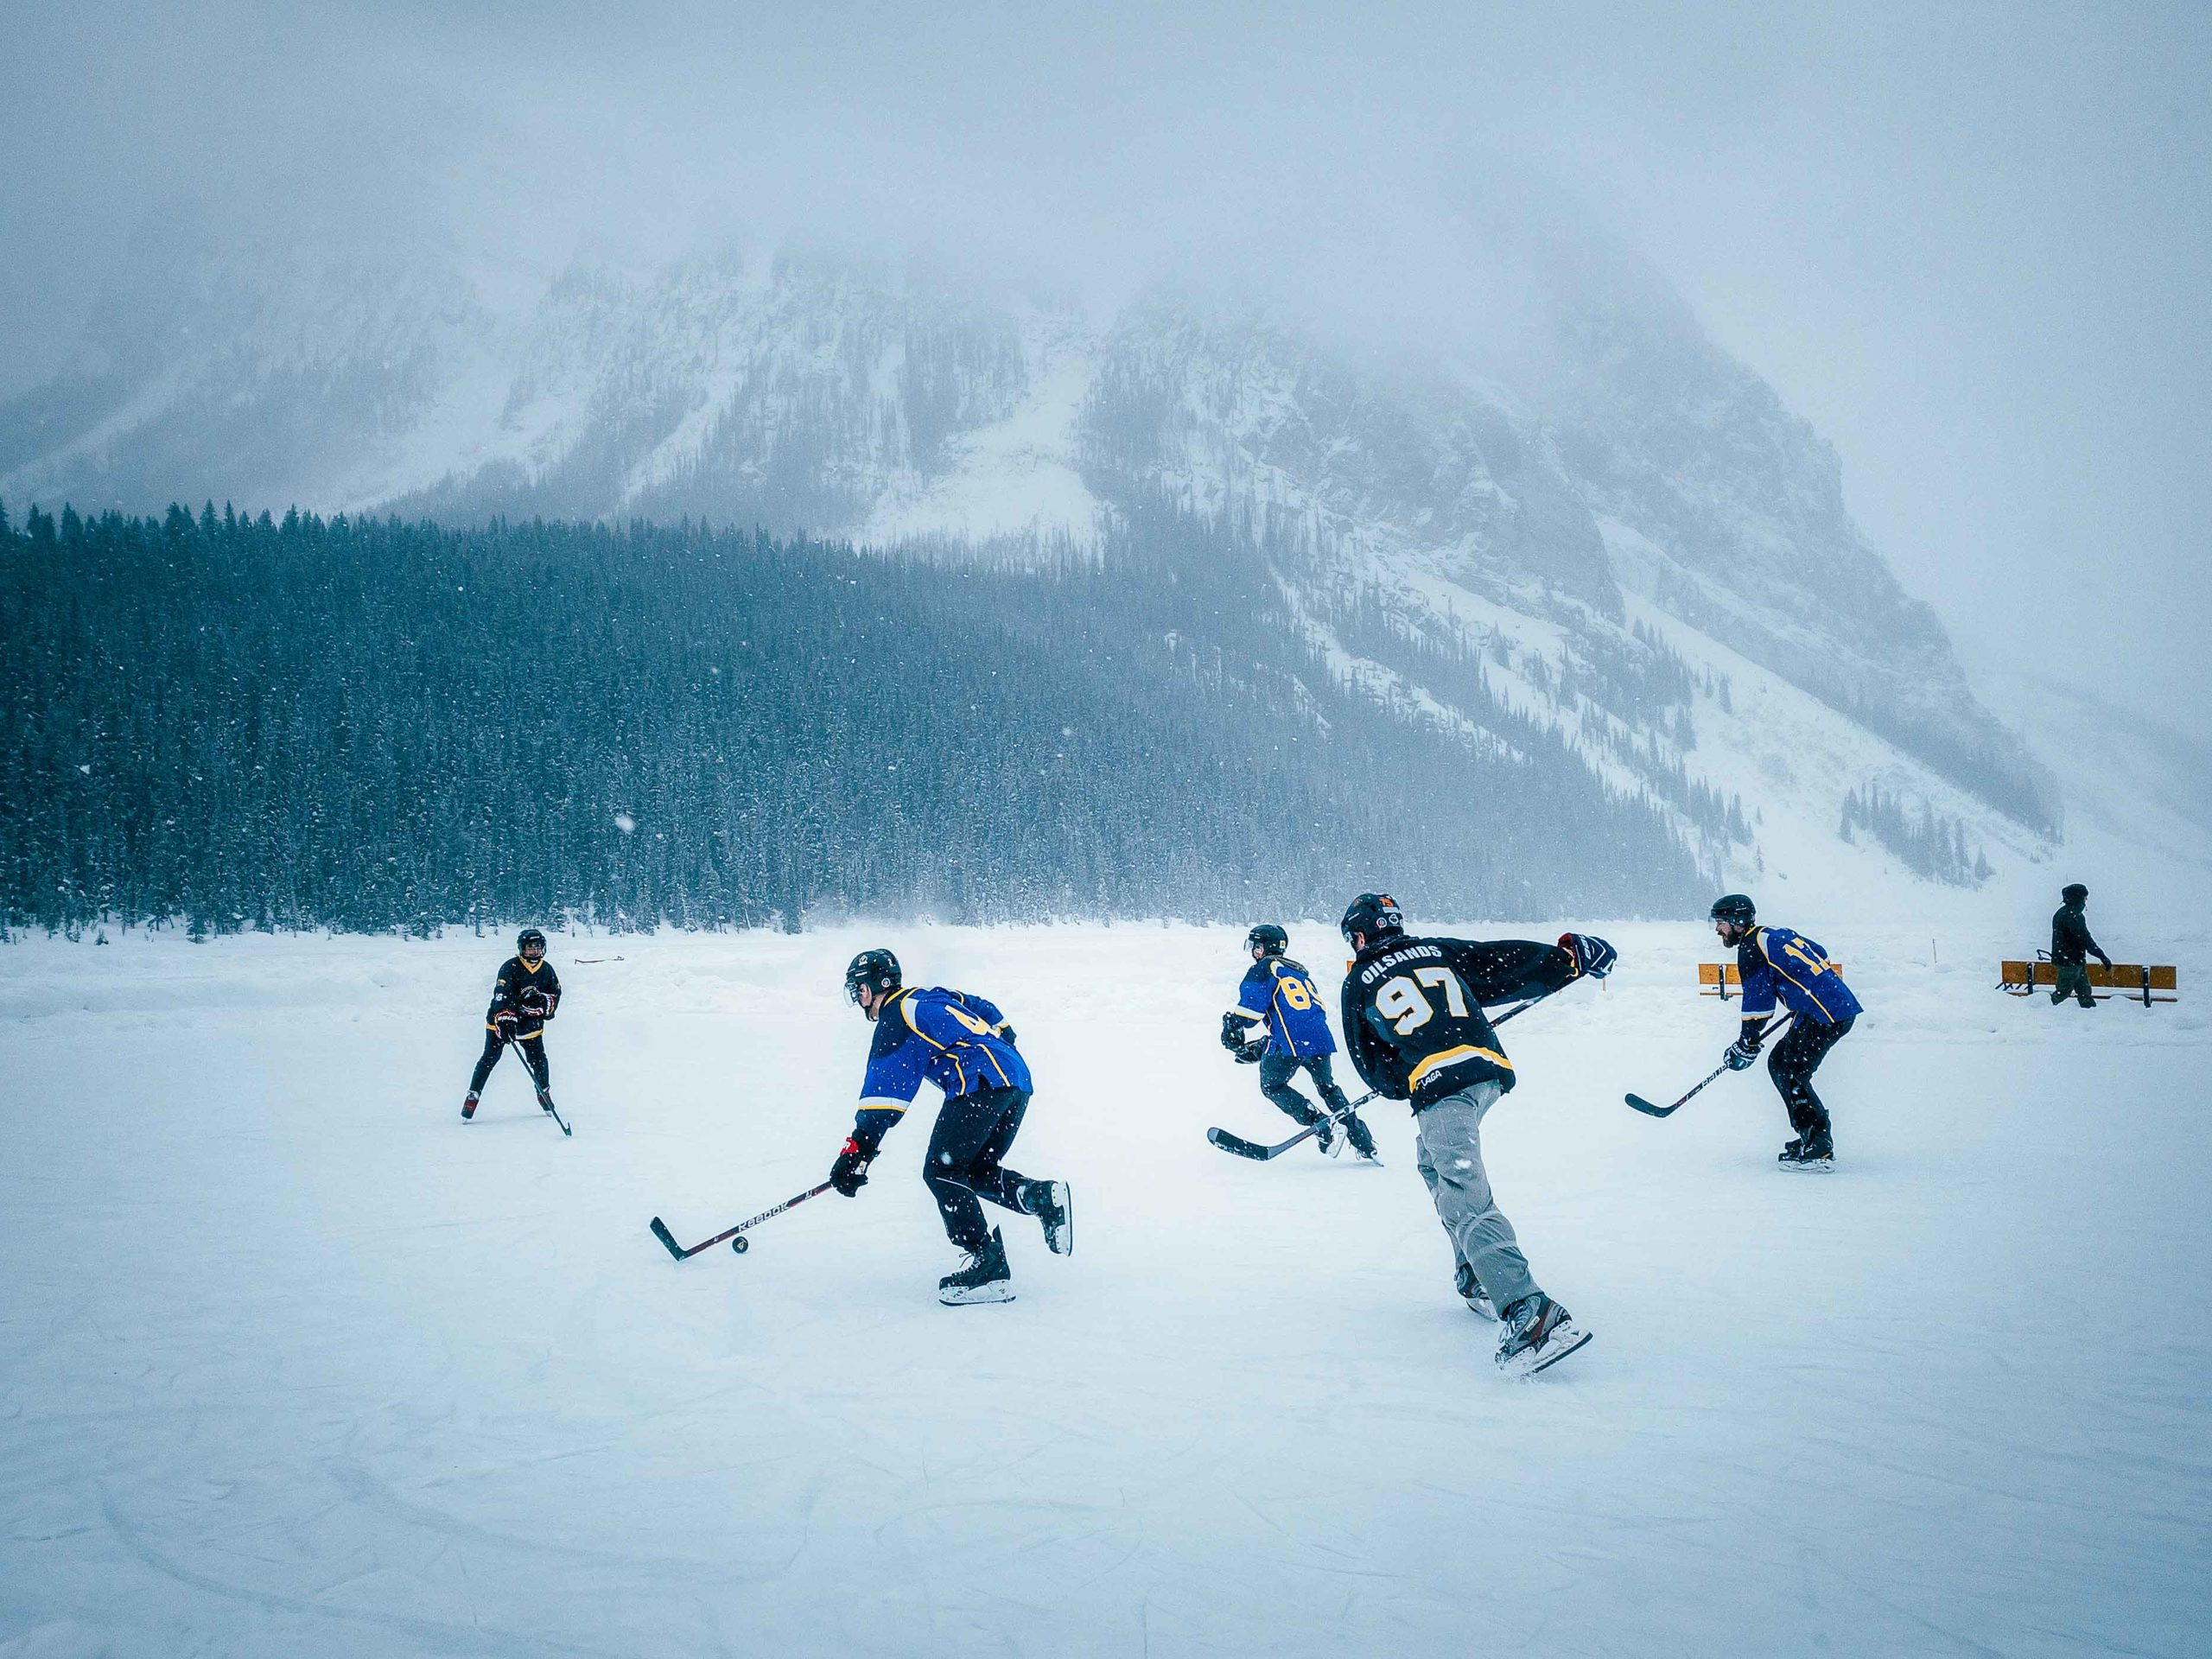 Sanjay Chauhan takes advantage of the soft light of the clouds over the pond hockey classic in his photography tips for your phone series